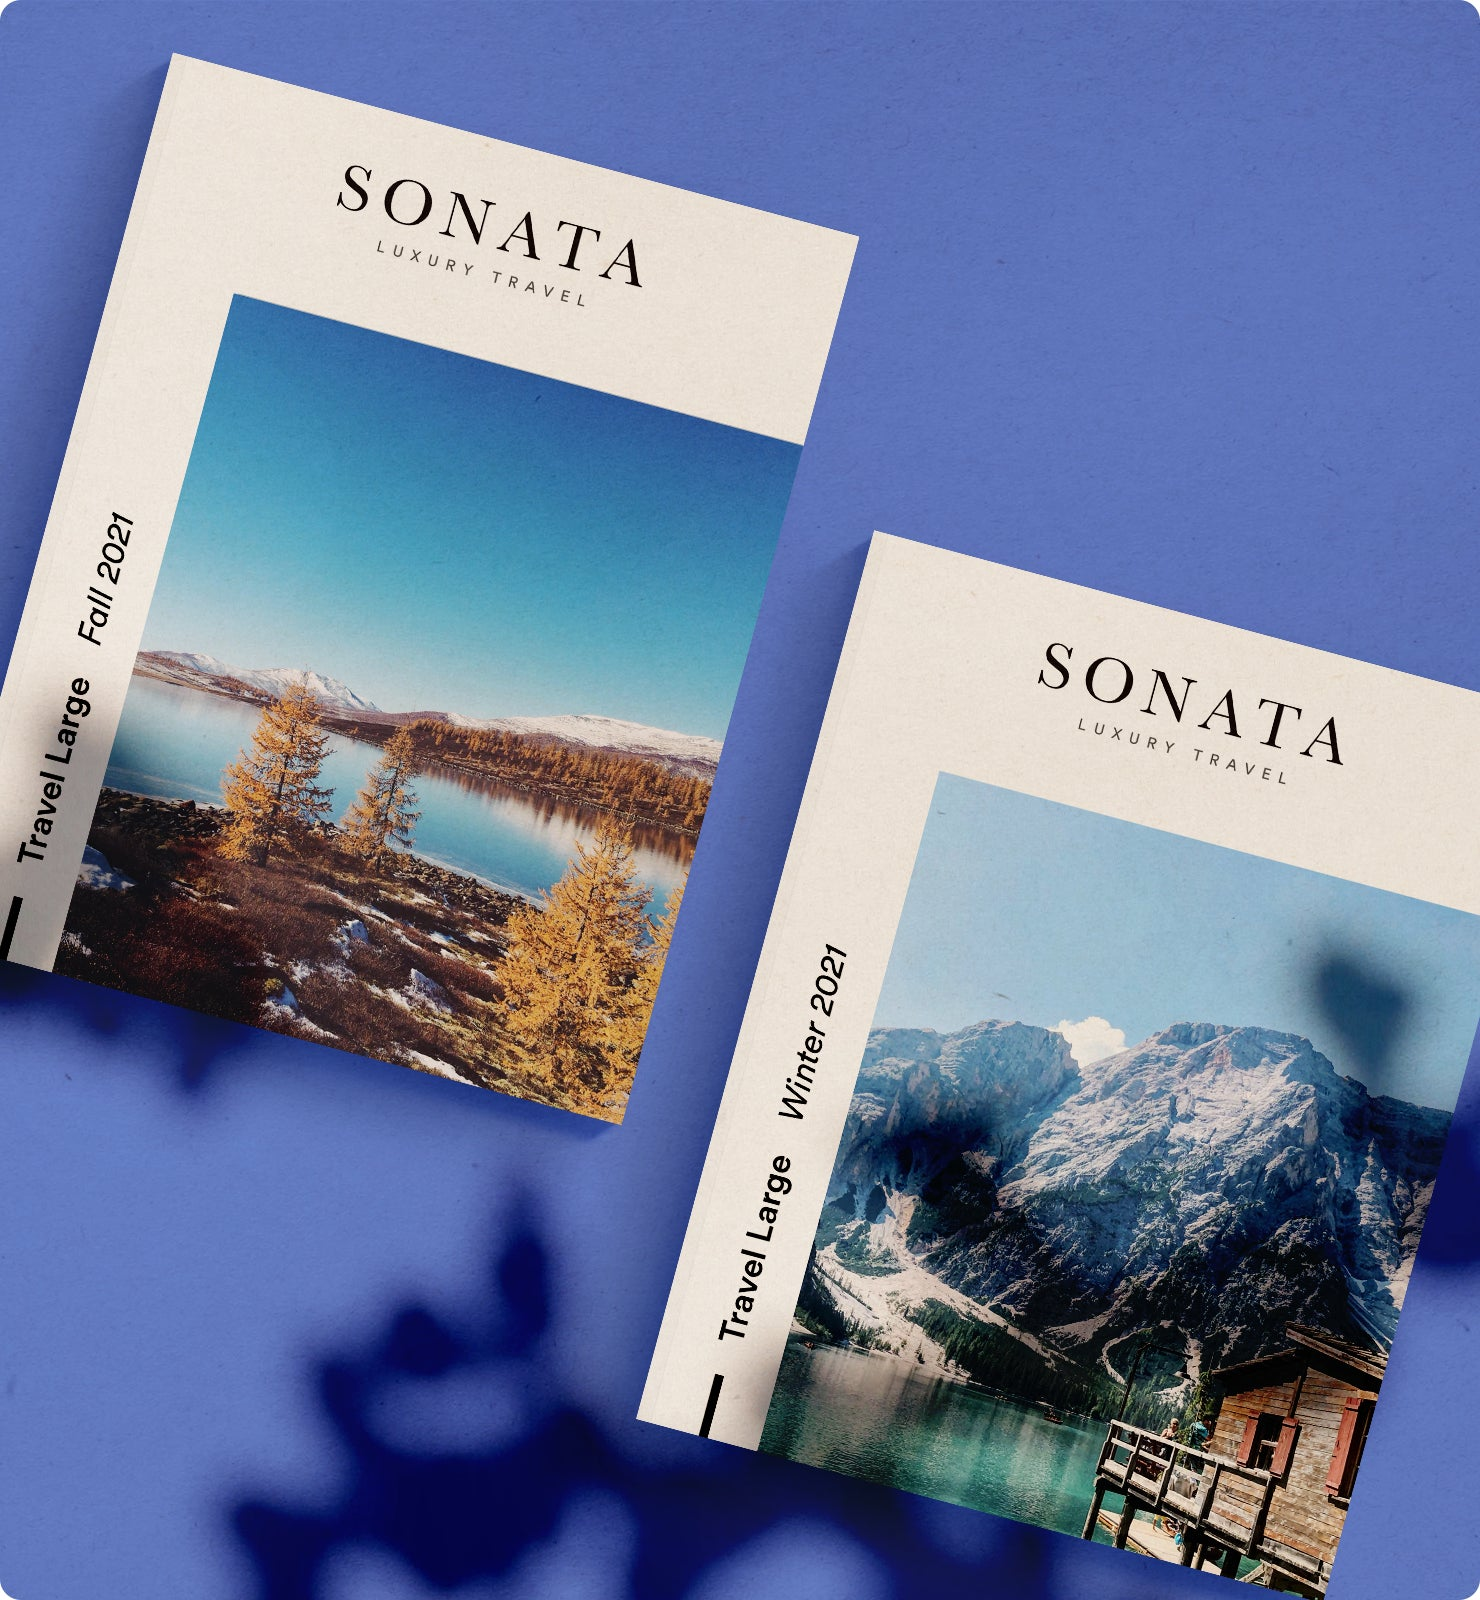 two Sonata Luxury Travel printed catalogs with outdoor scenes on the covers